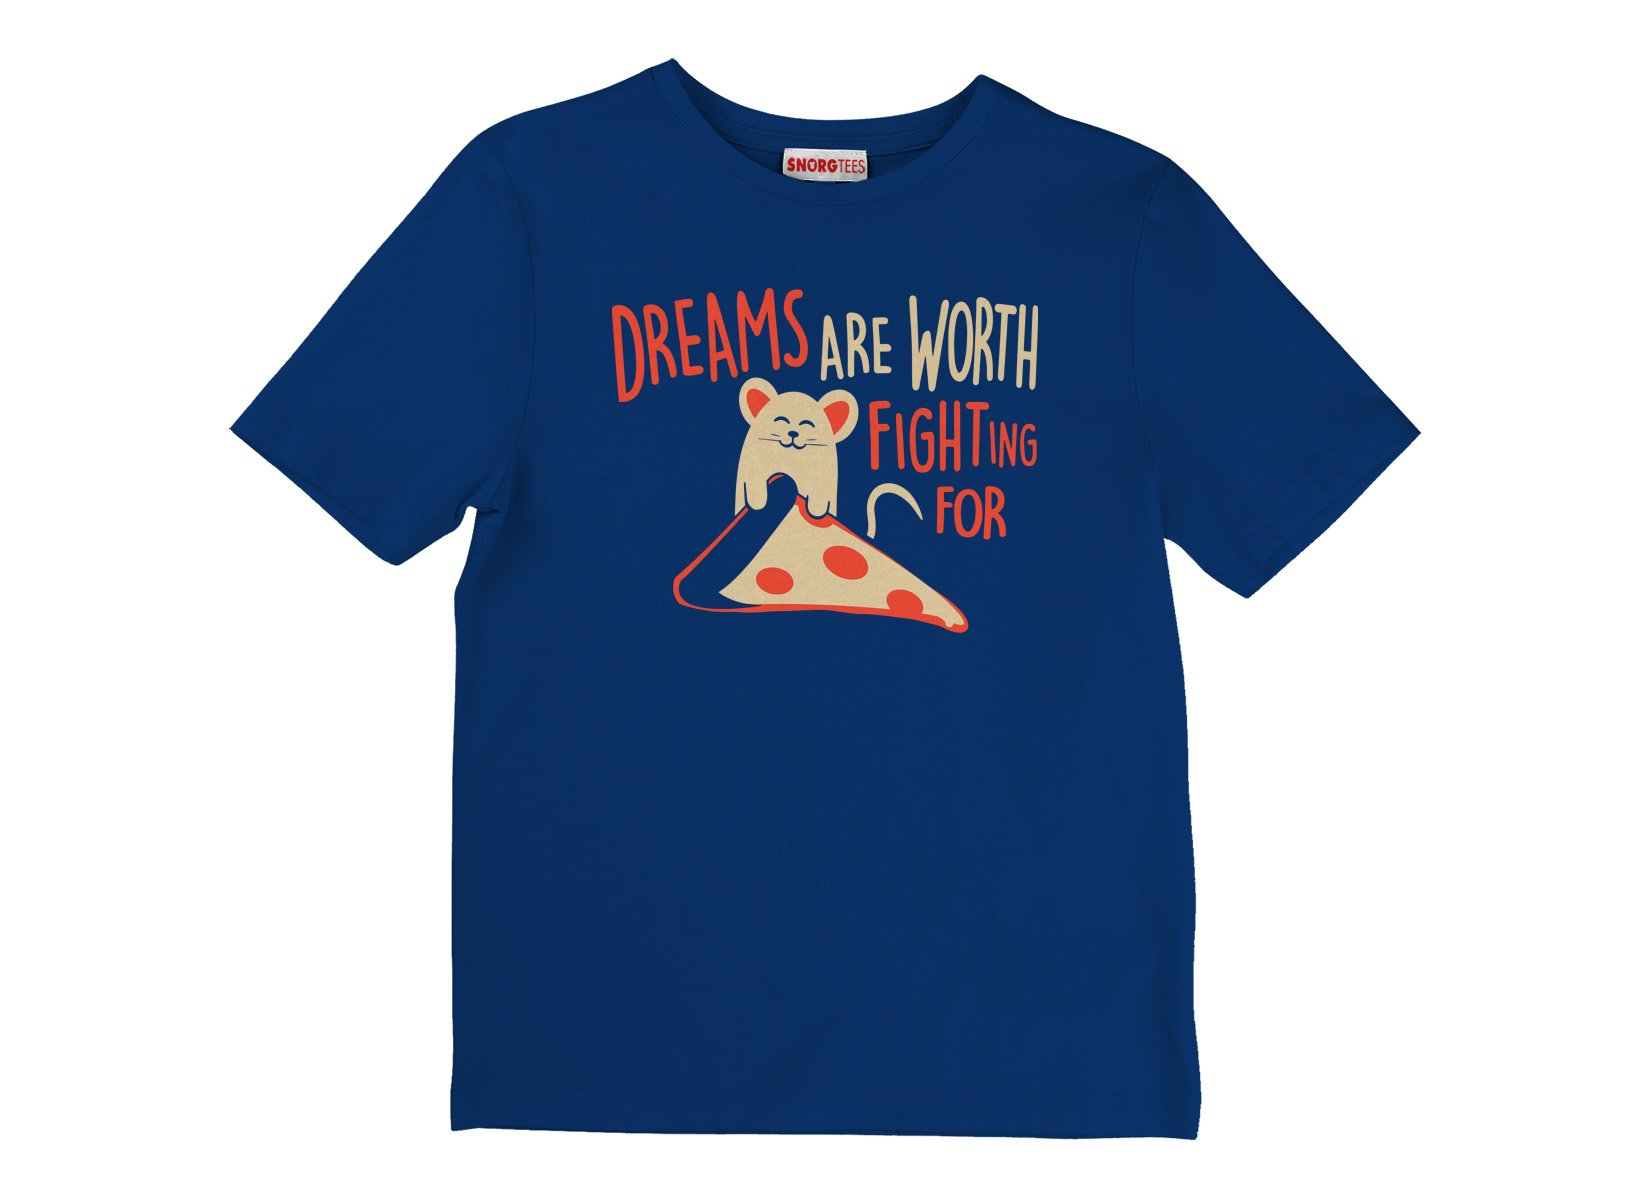 Dreams Are Worth Fighting For on Kids T-Shirt